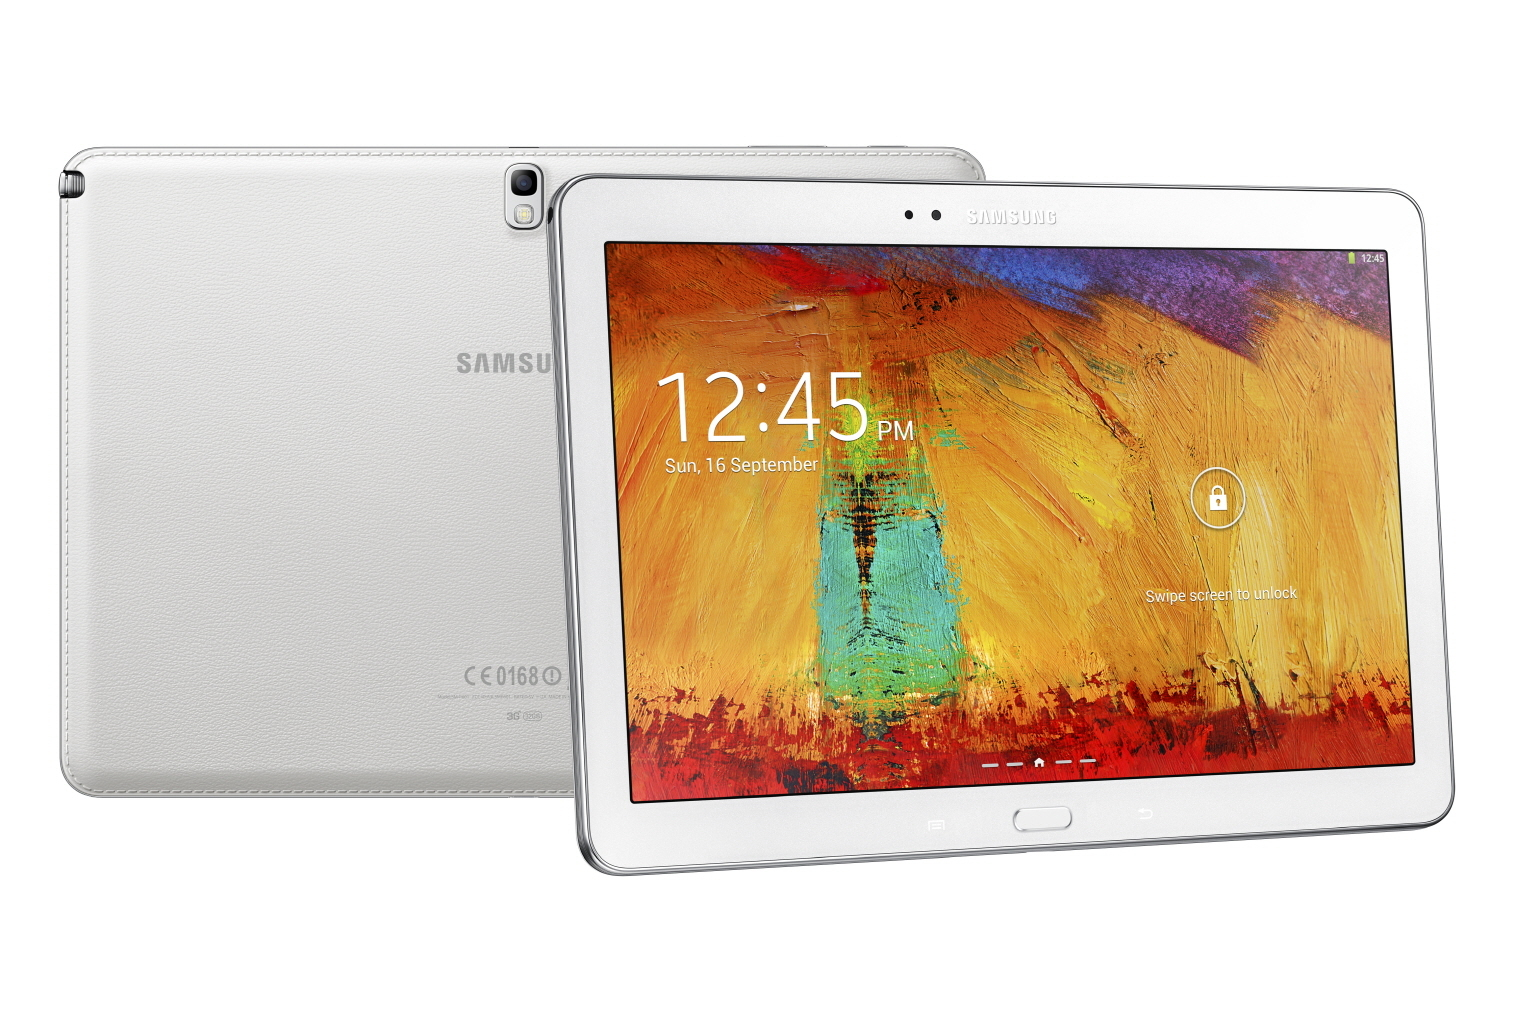 Samsung Galaxy Note 10.1 - 2014 Edition (Graphic: Business Wire)